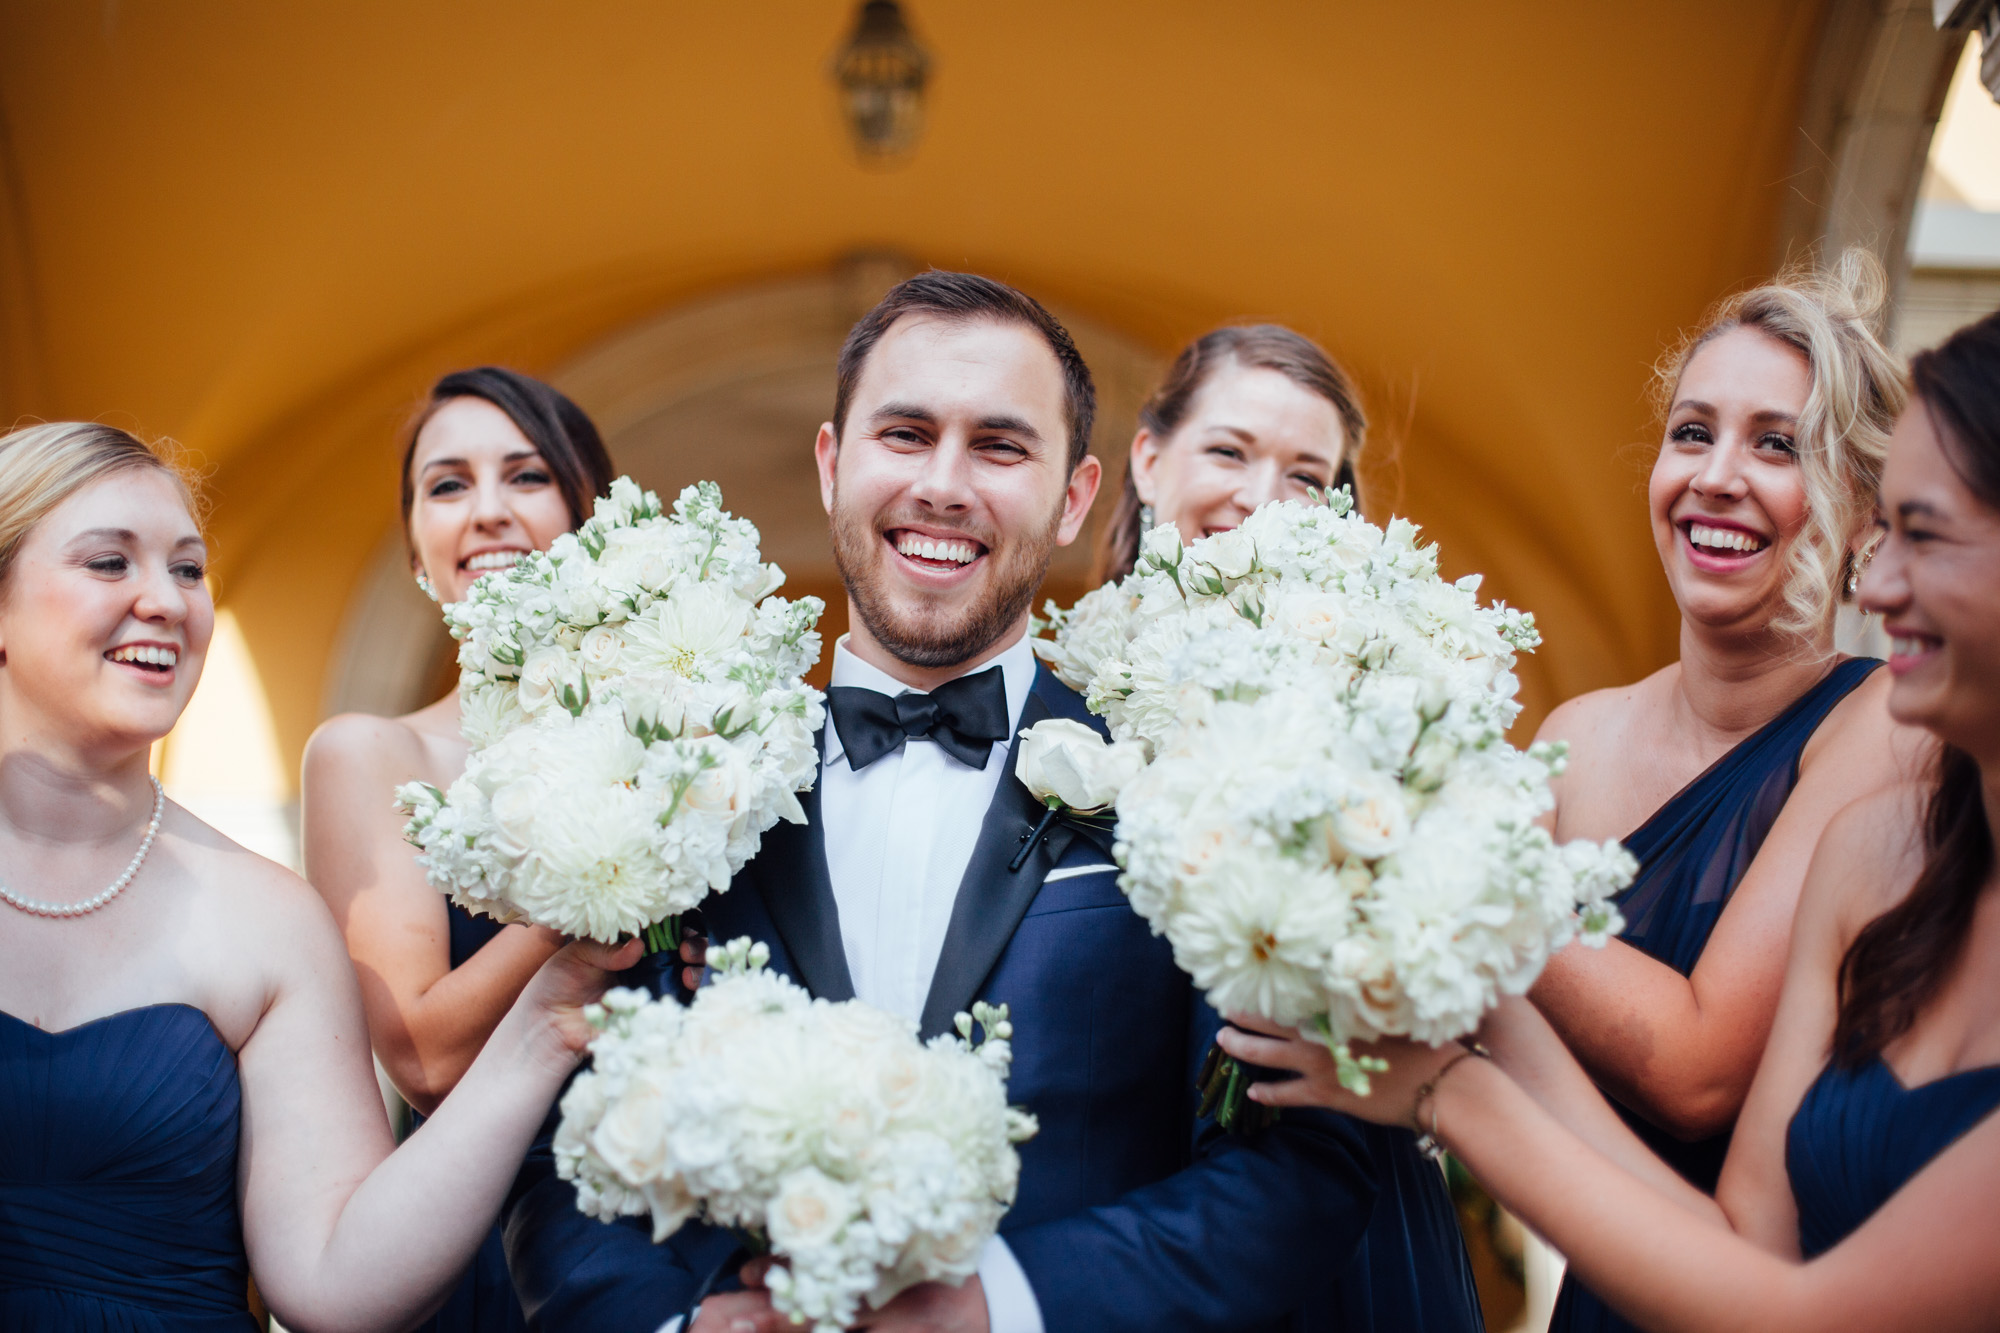 SarahMattozziPhotography-BlackTieWedding-WashingtonDC-51.jpg